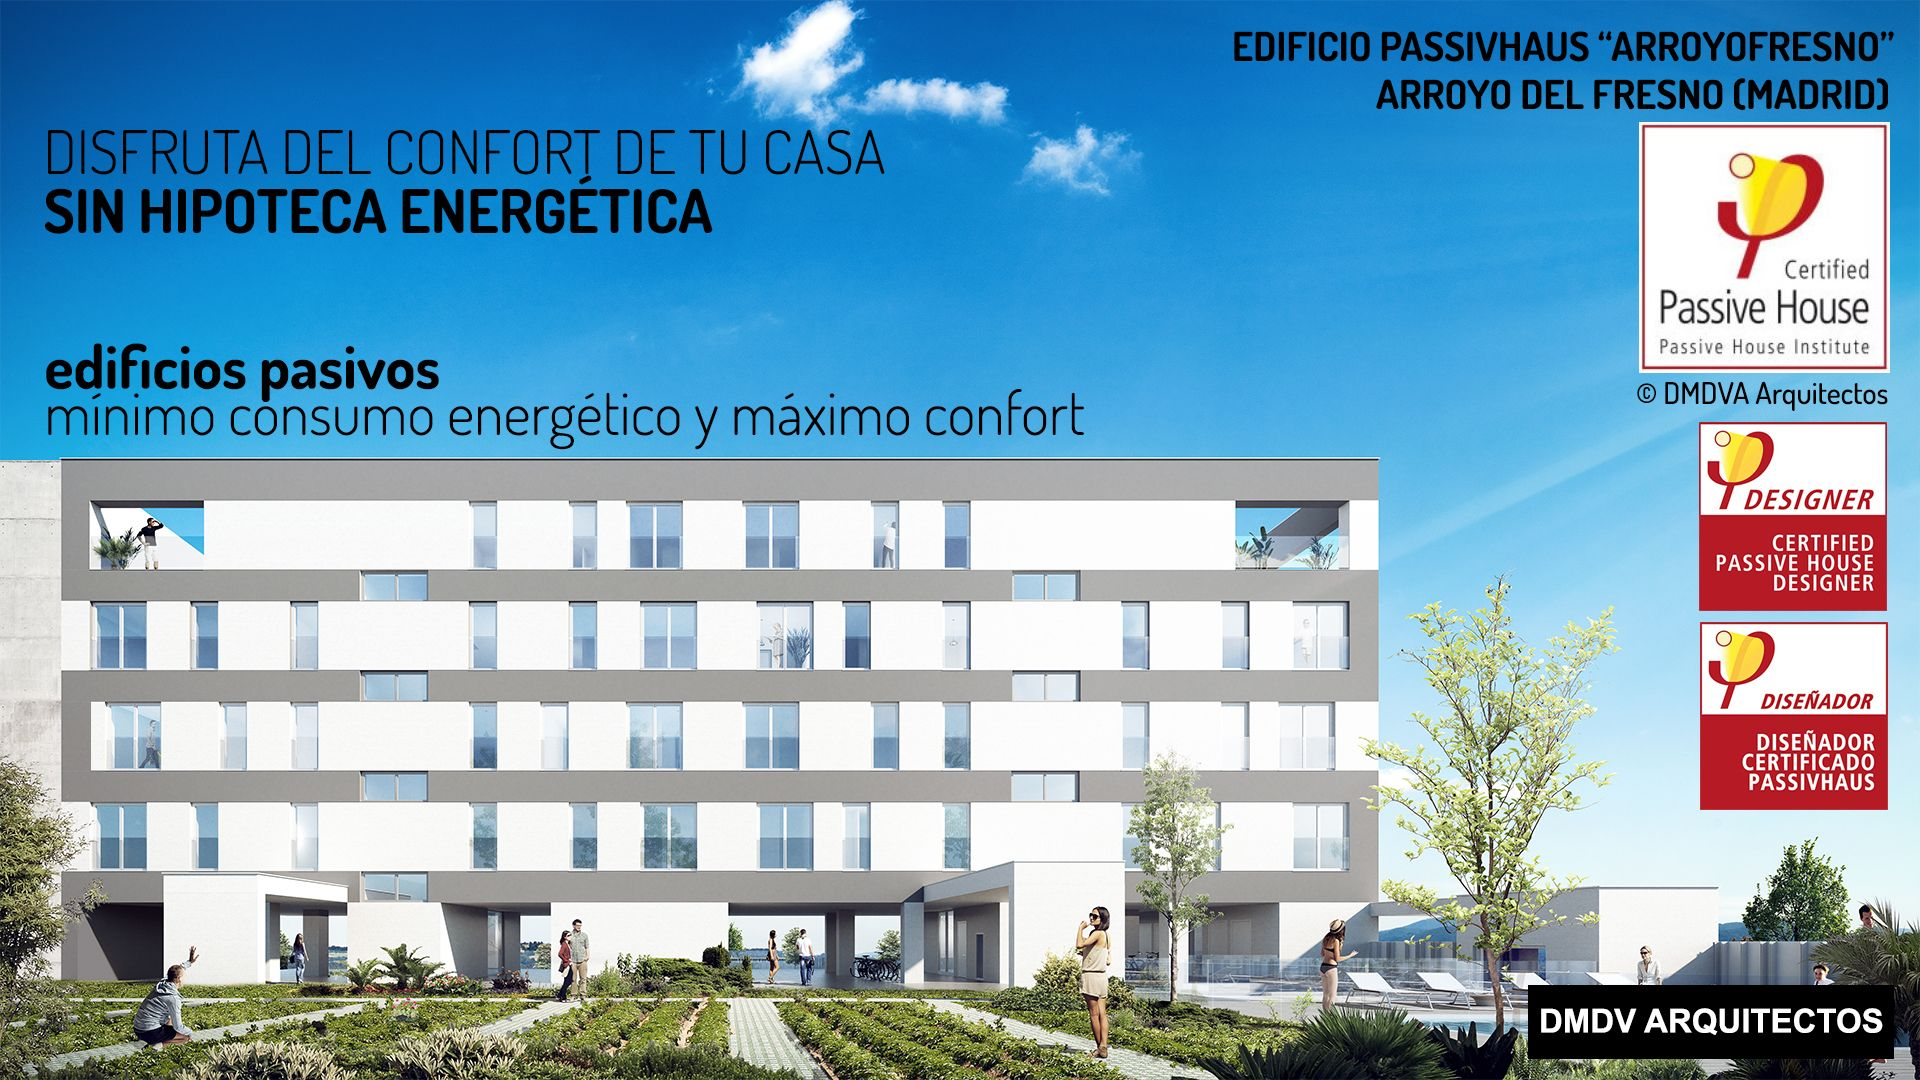 passivhaus madrid arroyofresno